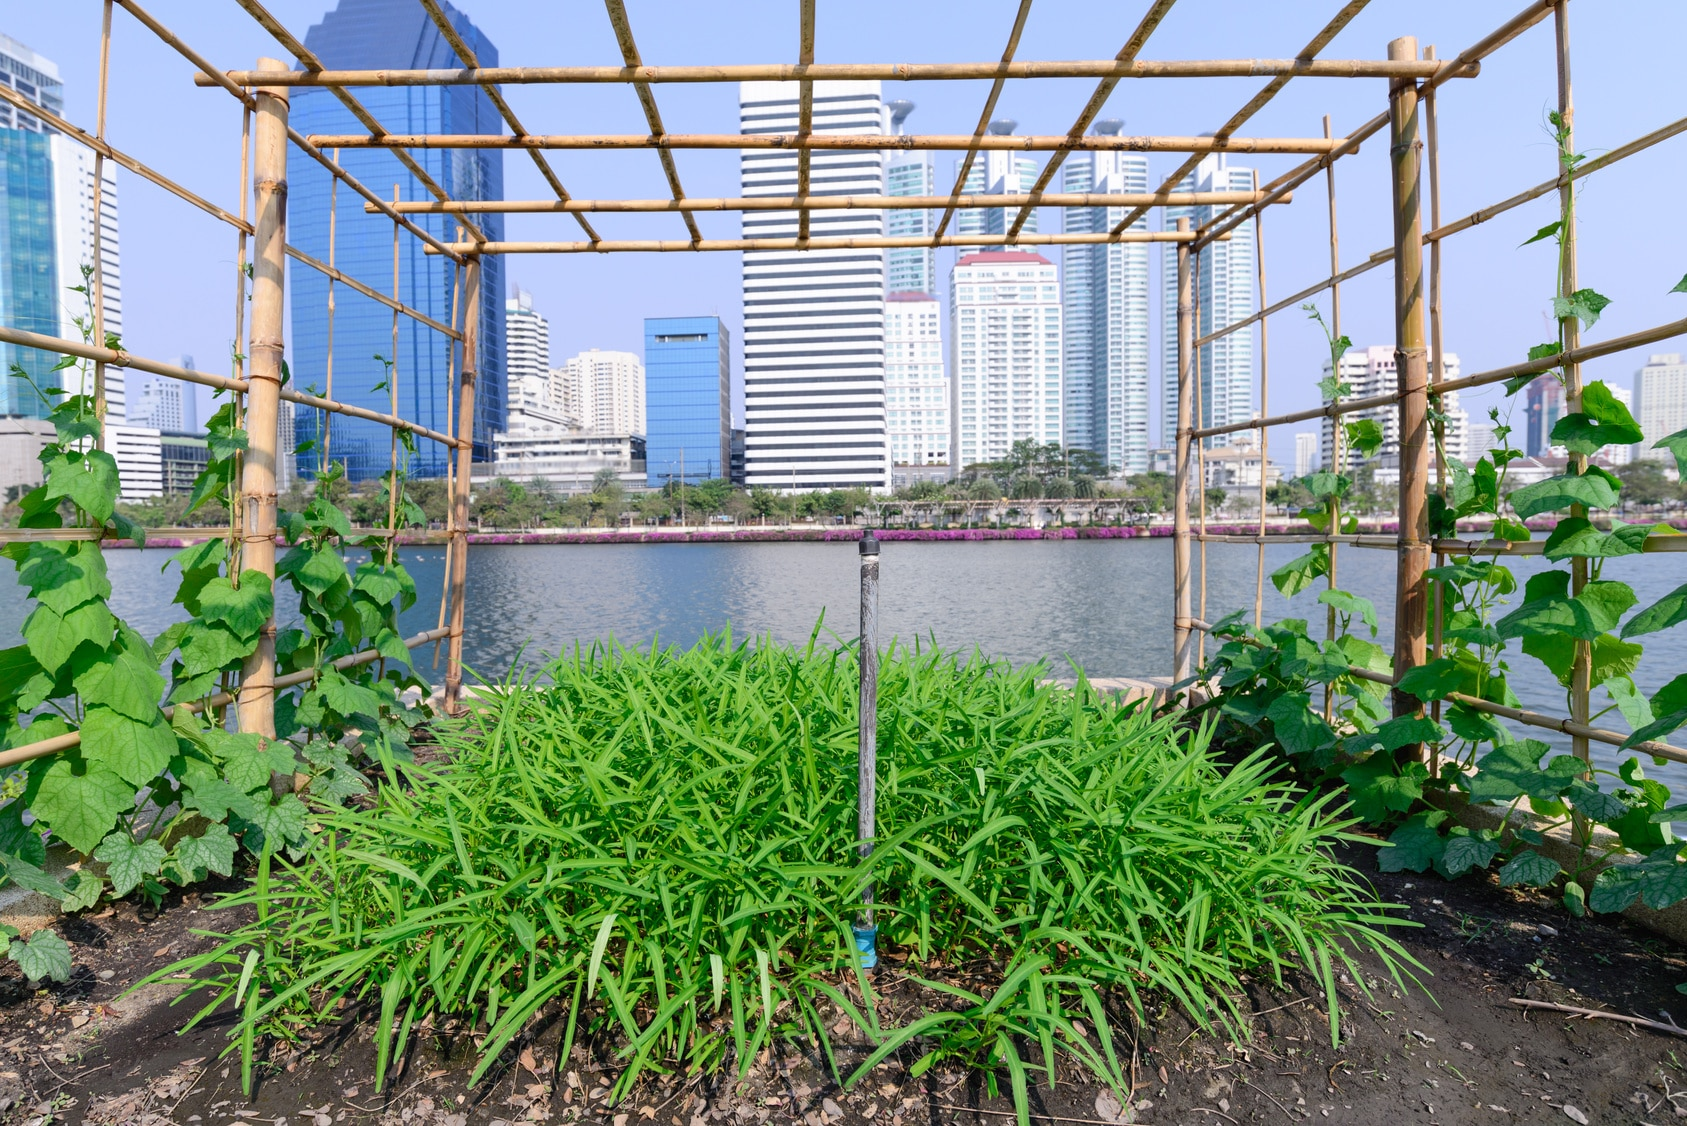 Vegetable plantation in urban garden.